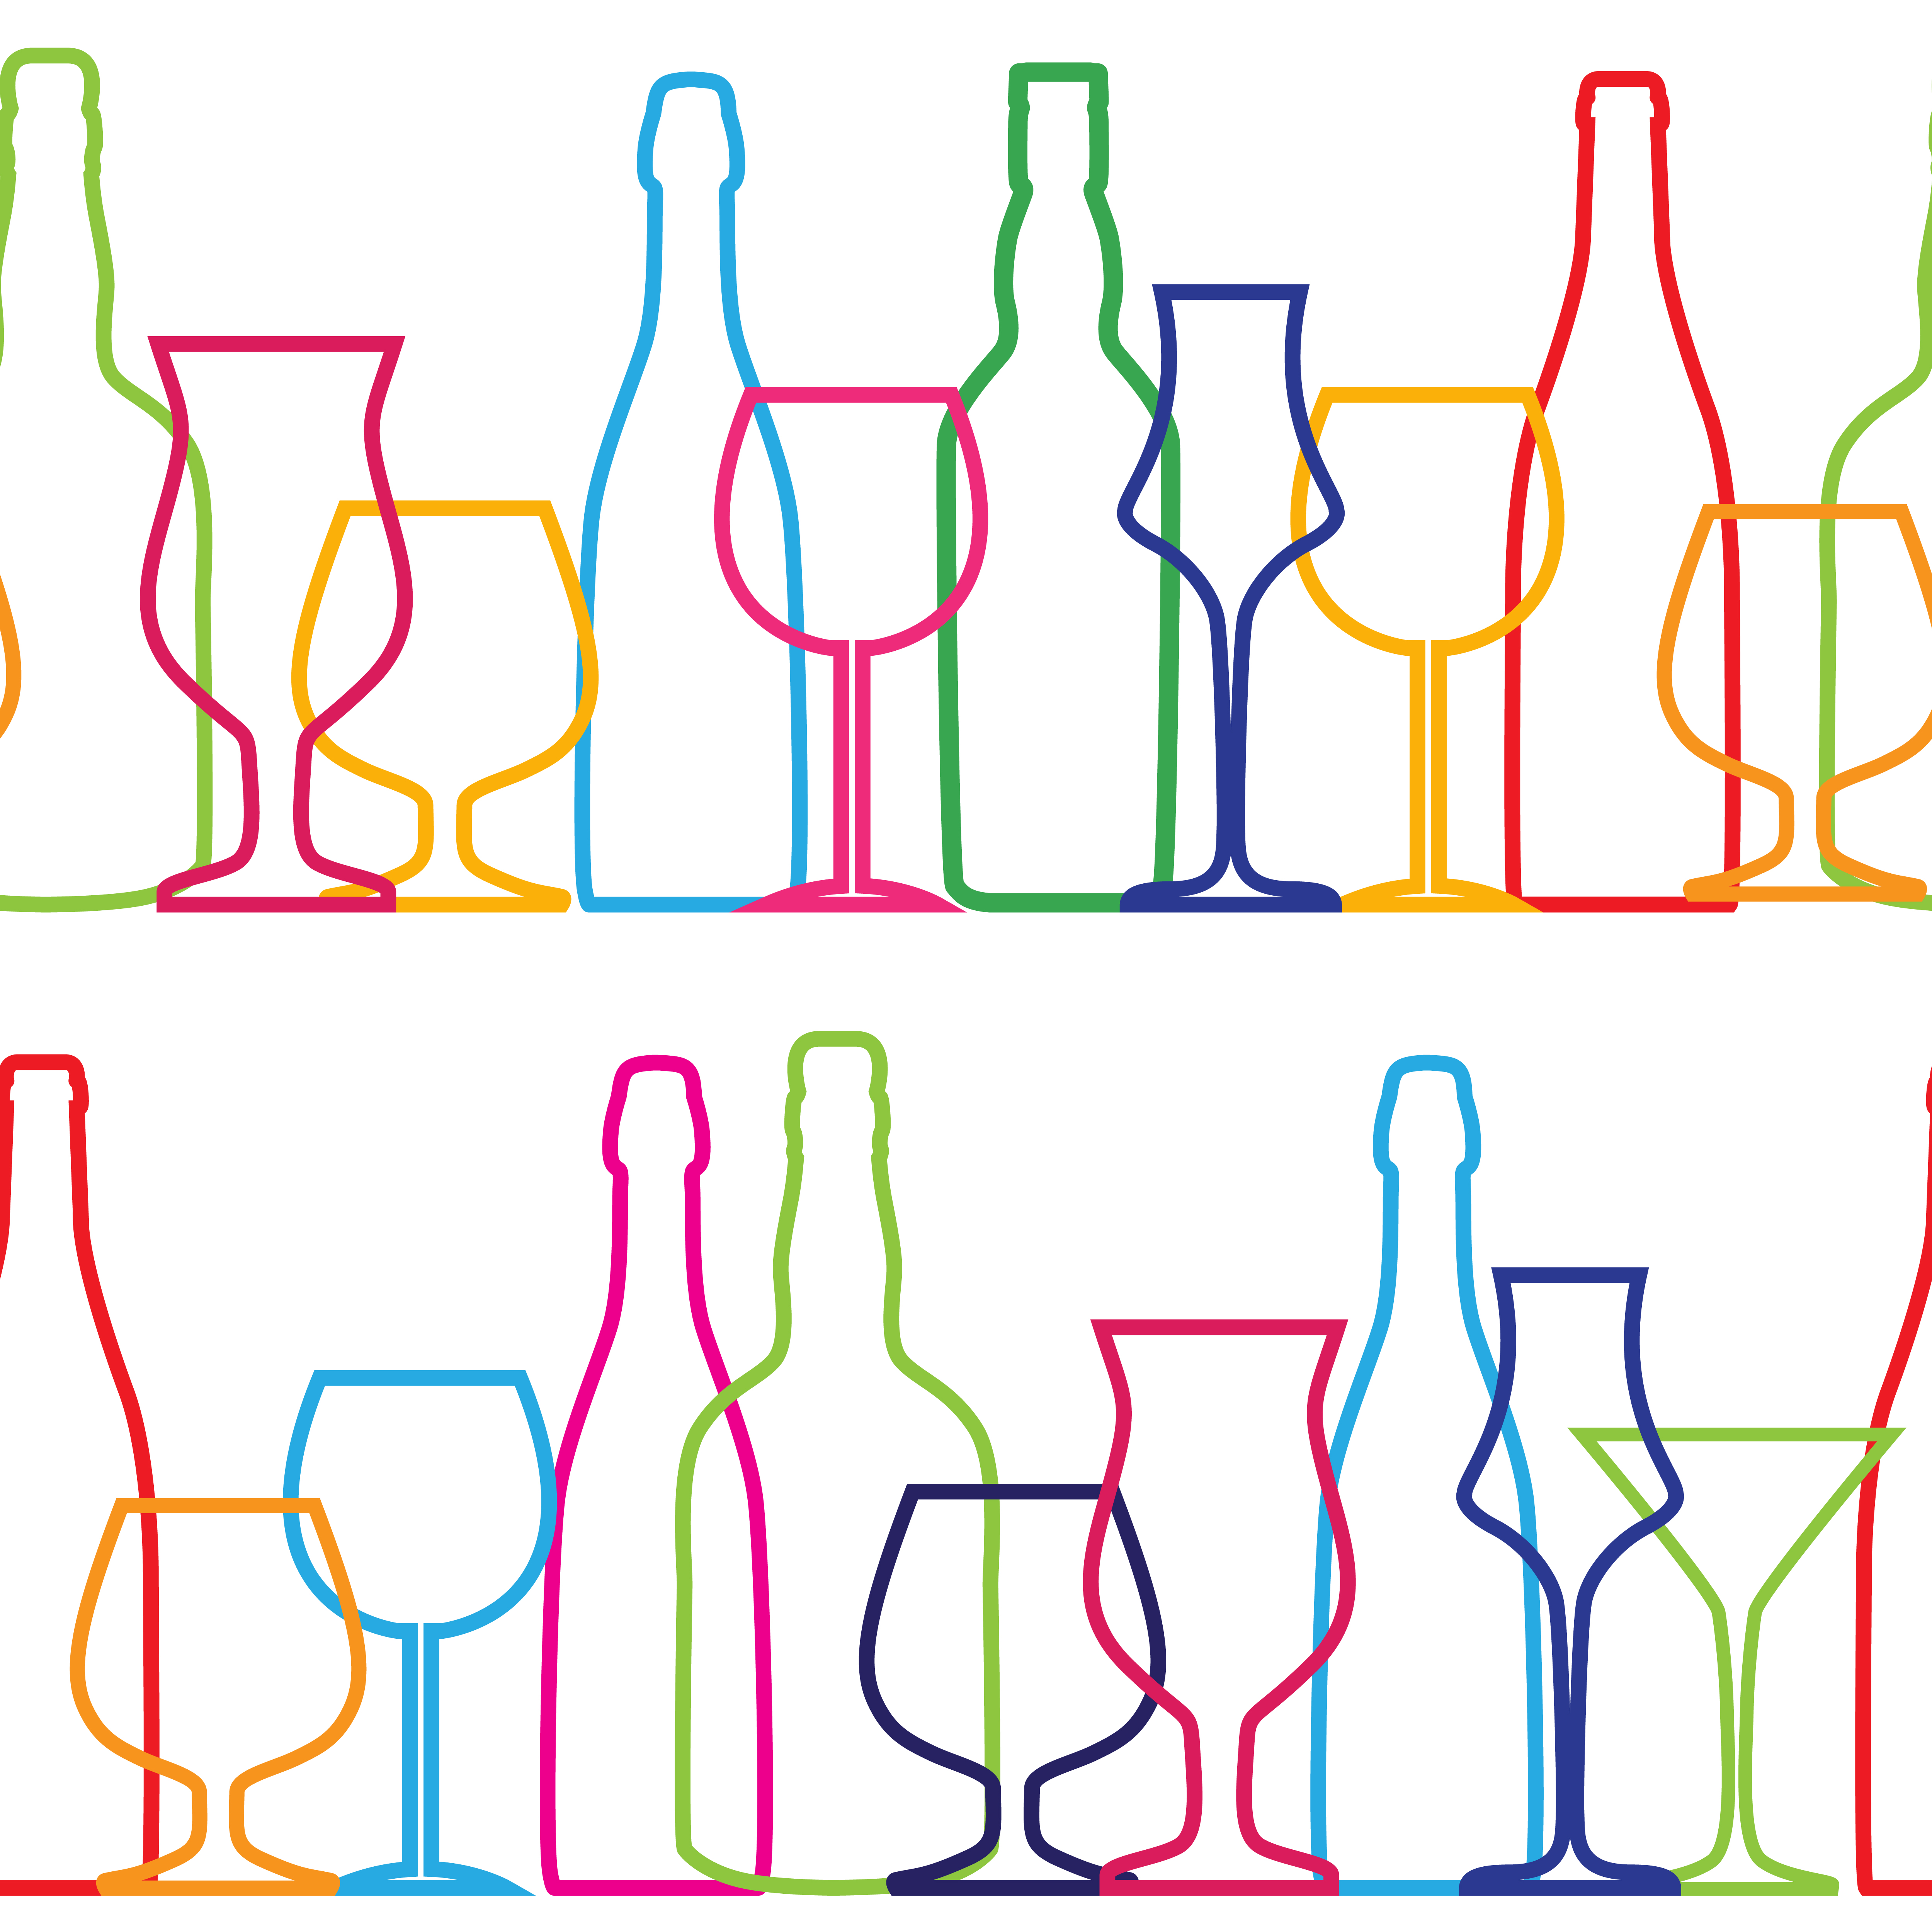 Alchohol bad for brain clipart png transparent Alcohol and your health: Is none better than a little? - Harvard ... png transparent